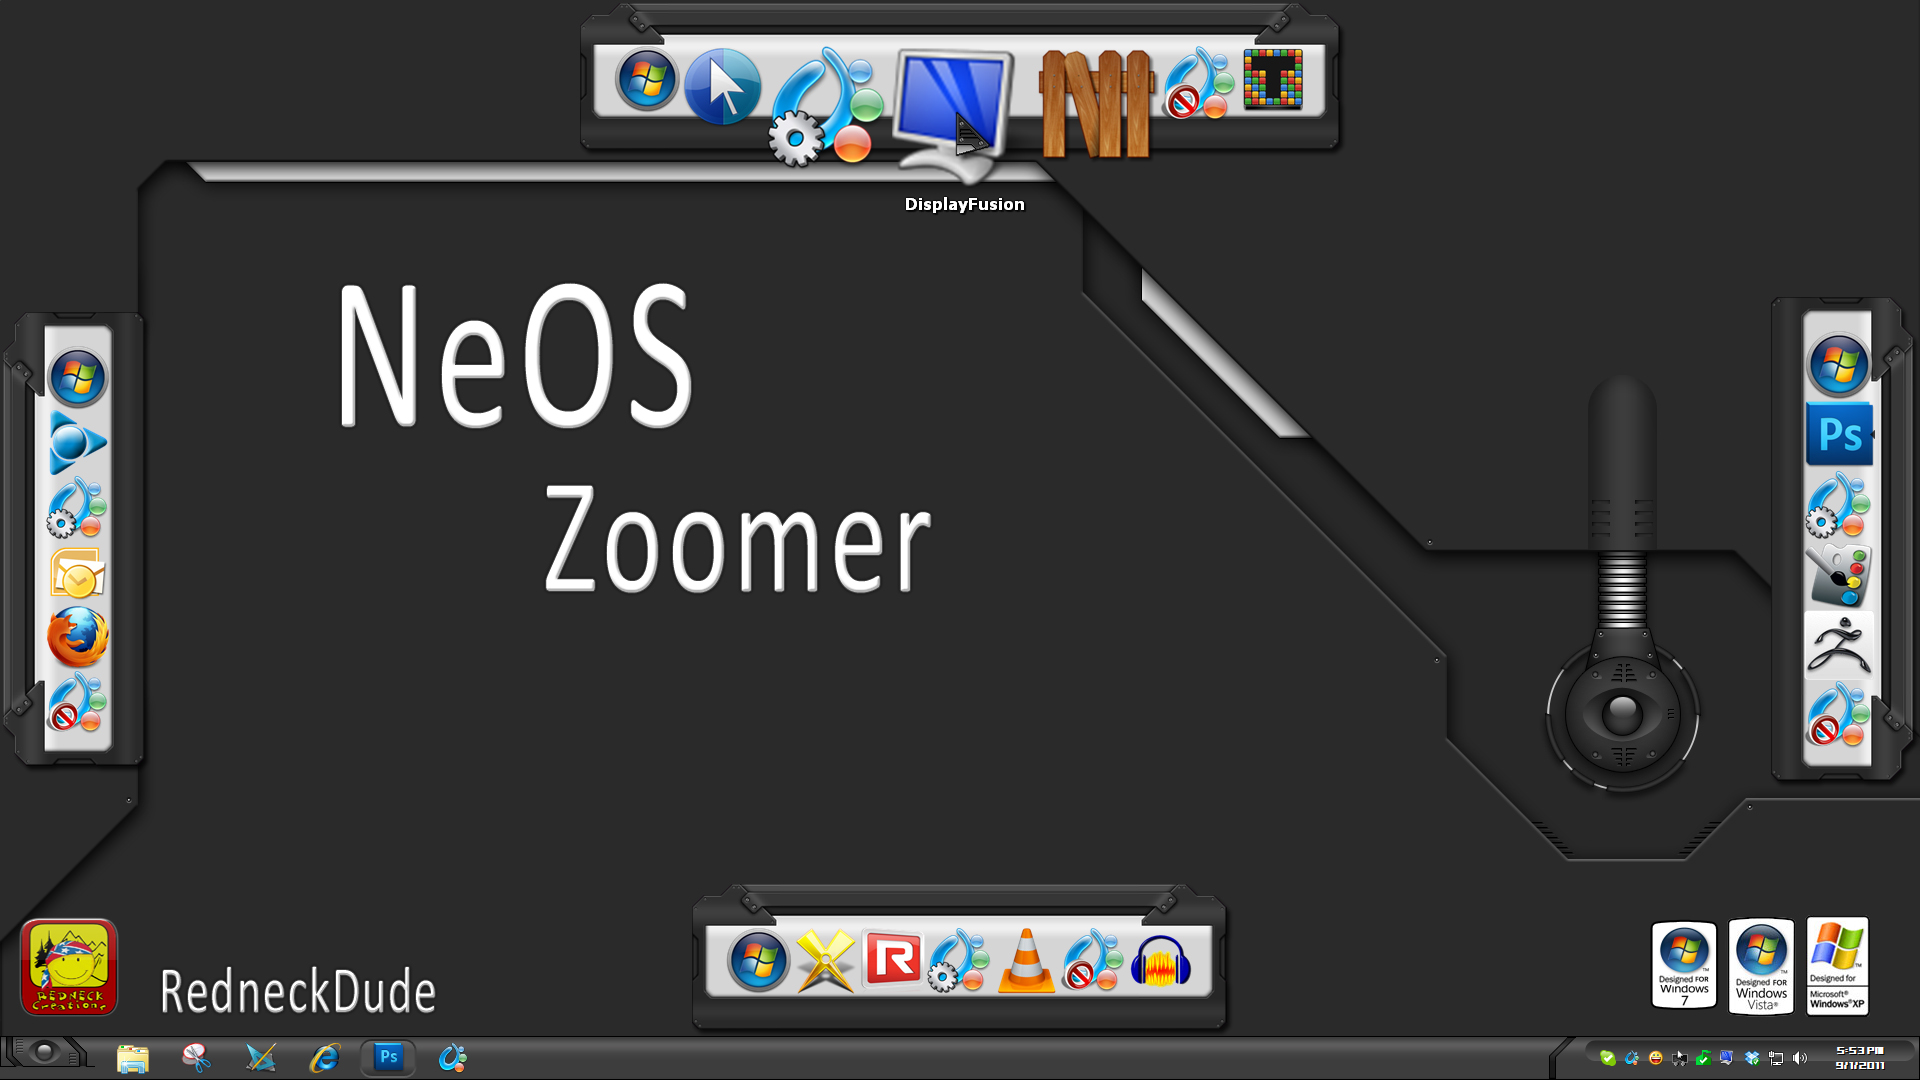 NeOS Zoomer